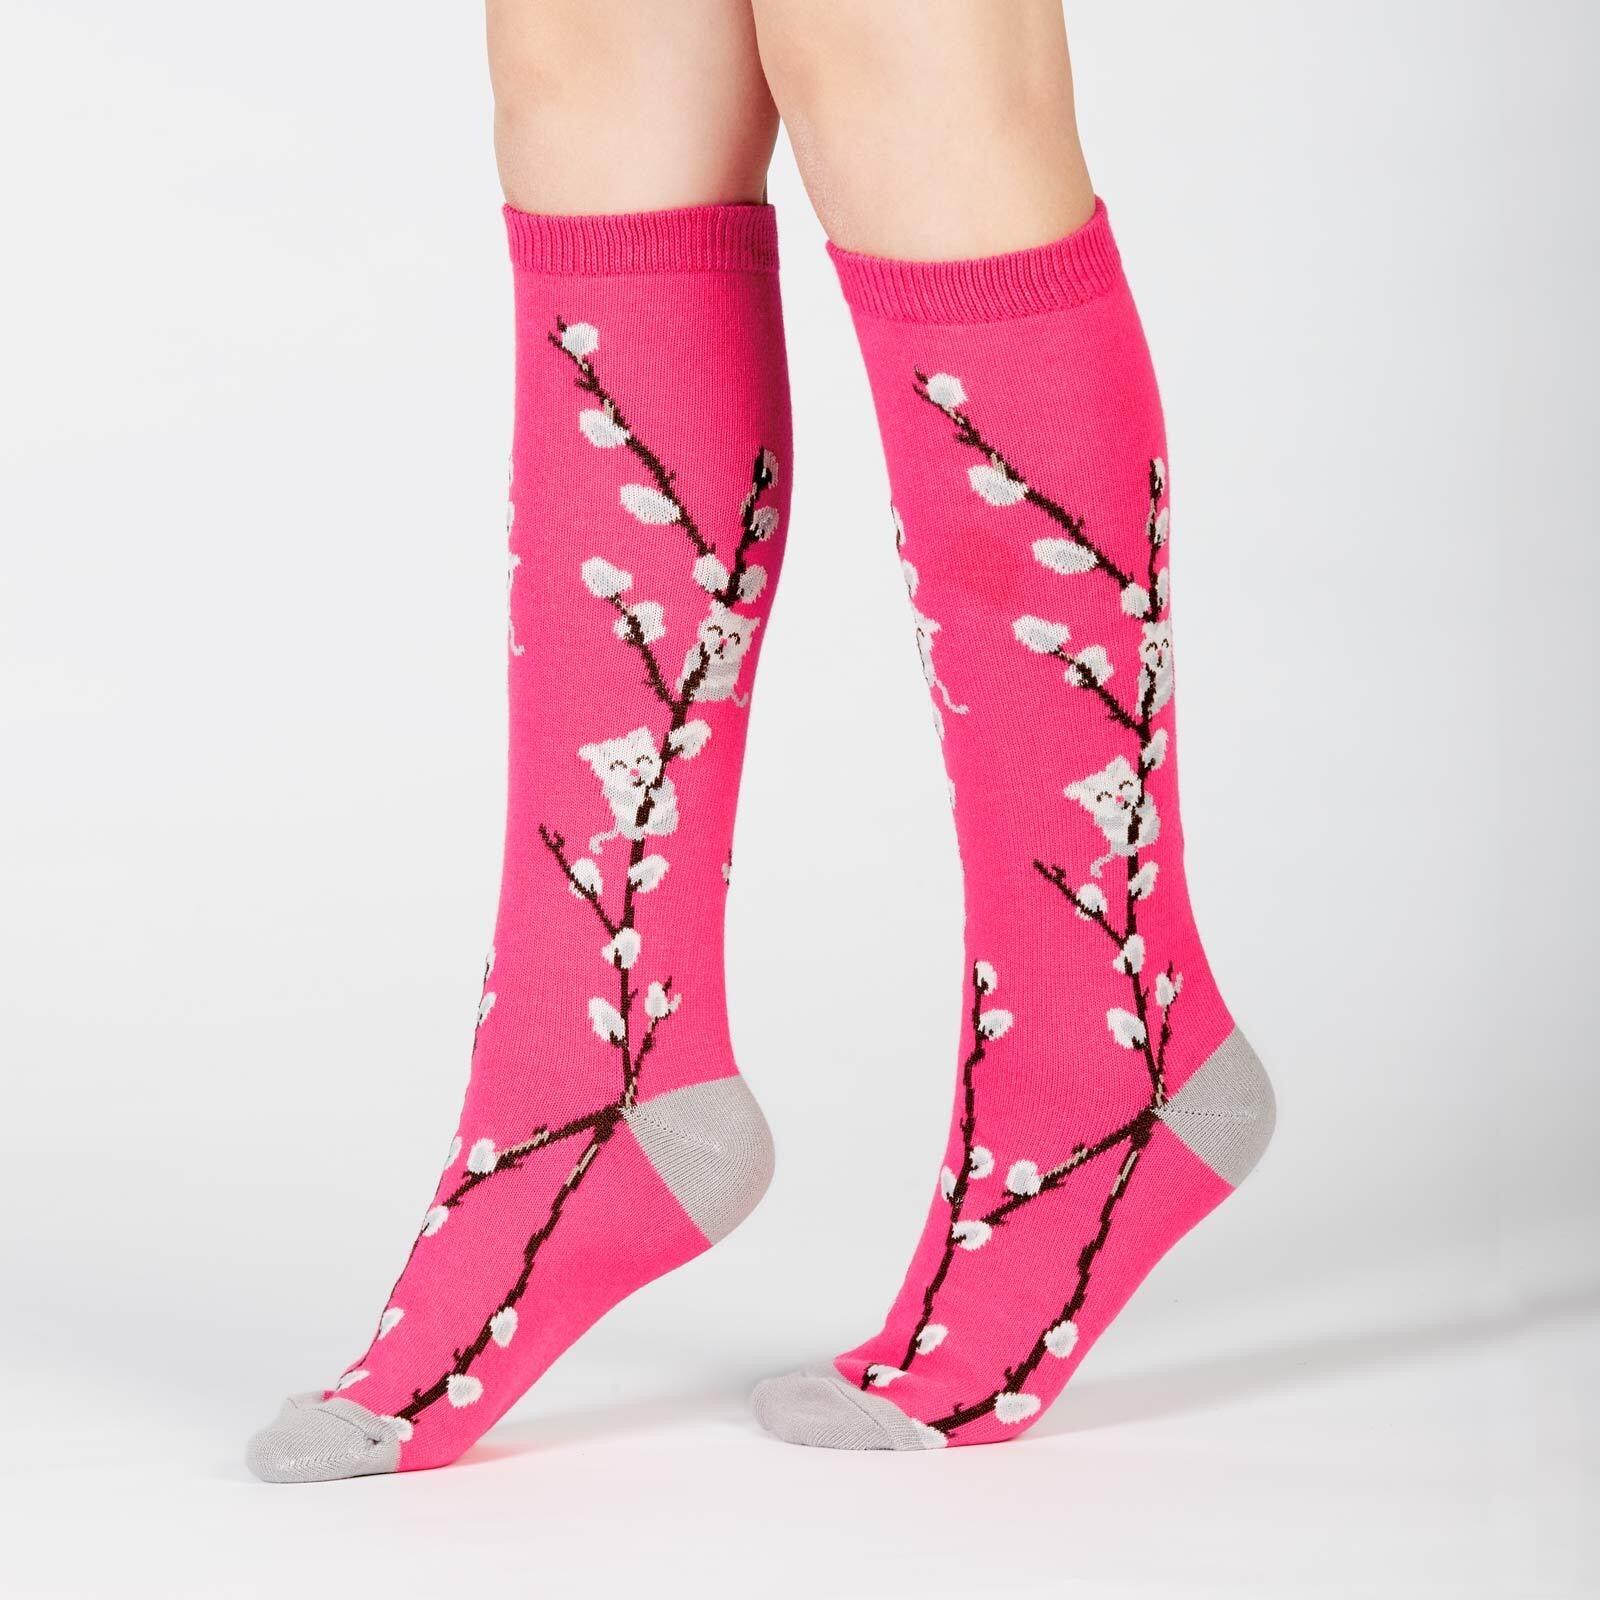 Youth Knee High Sock (ages 3-6)